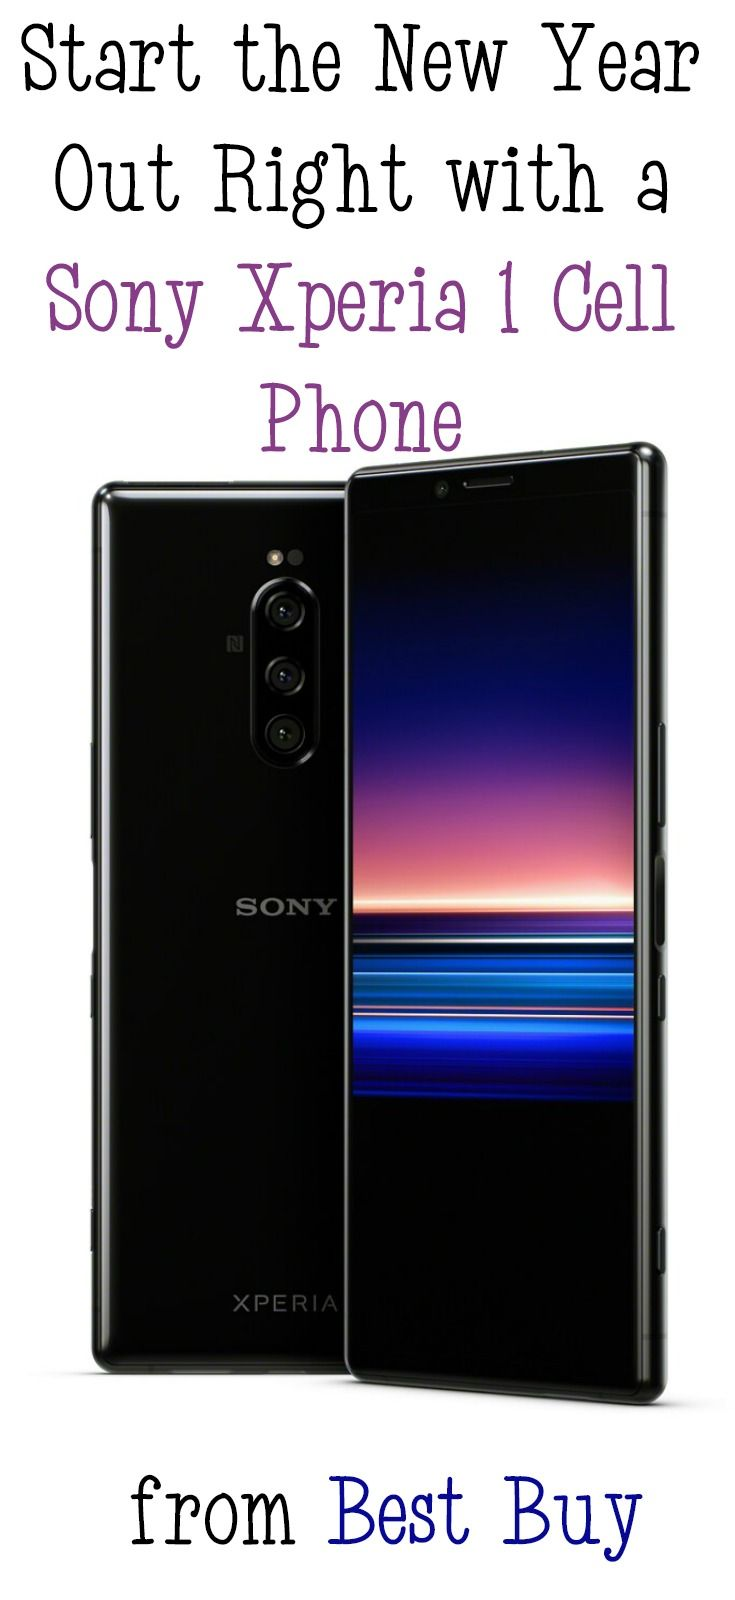 Start The New Year Out Right With A Sony Xperia 1 Cell Phone From Best Buy Sony Xperia Cool Things To Buy Cell